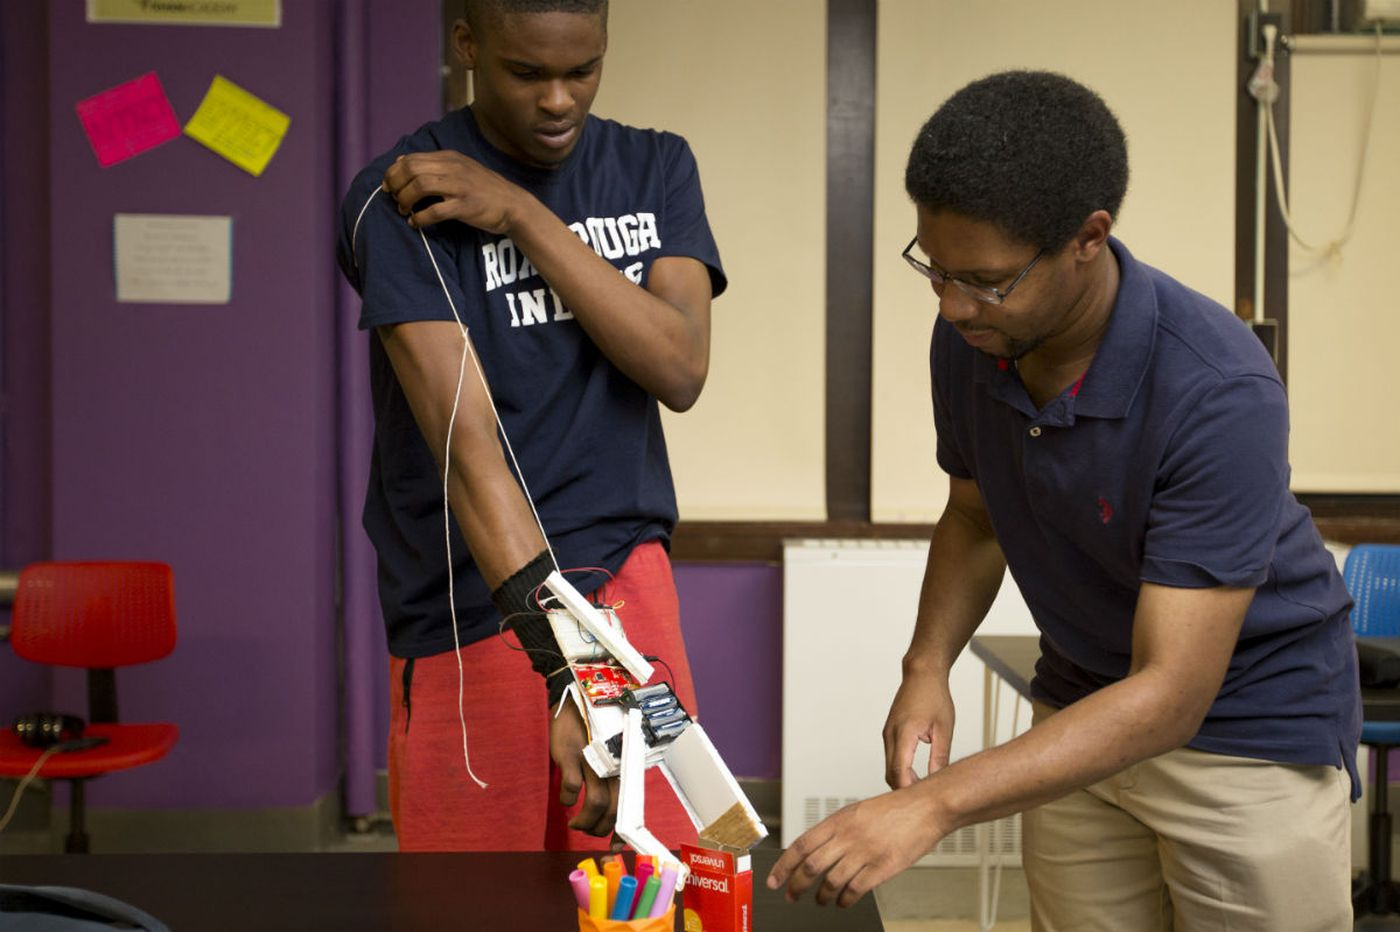 Schools mixing art and science to create STEAM